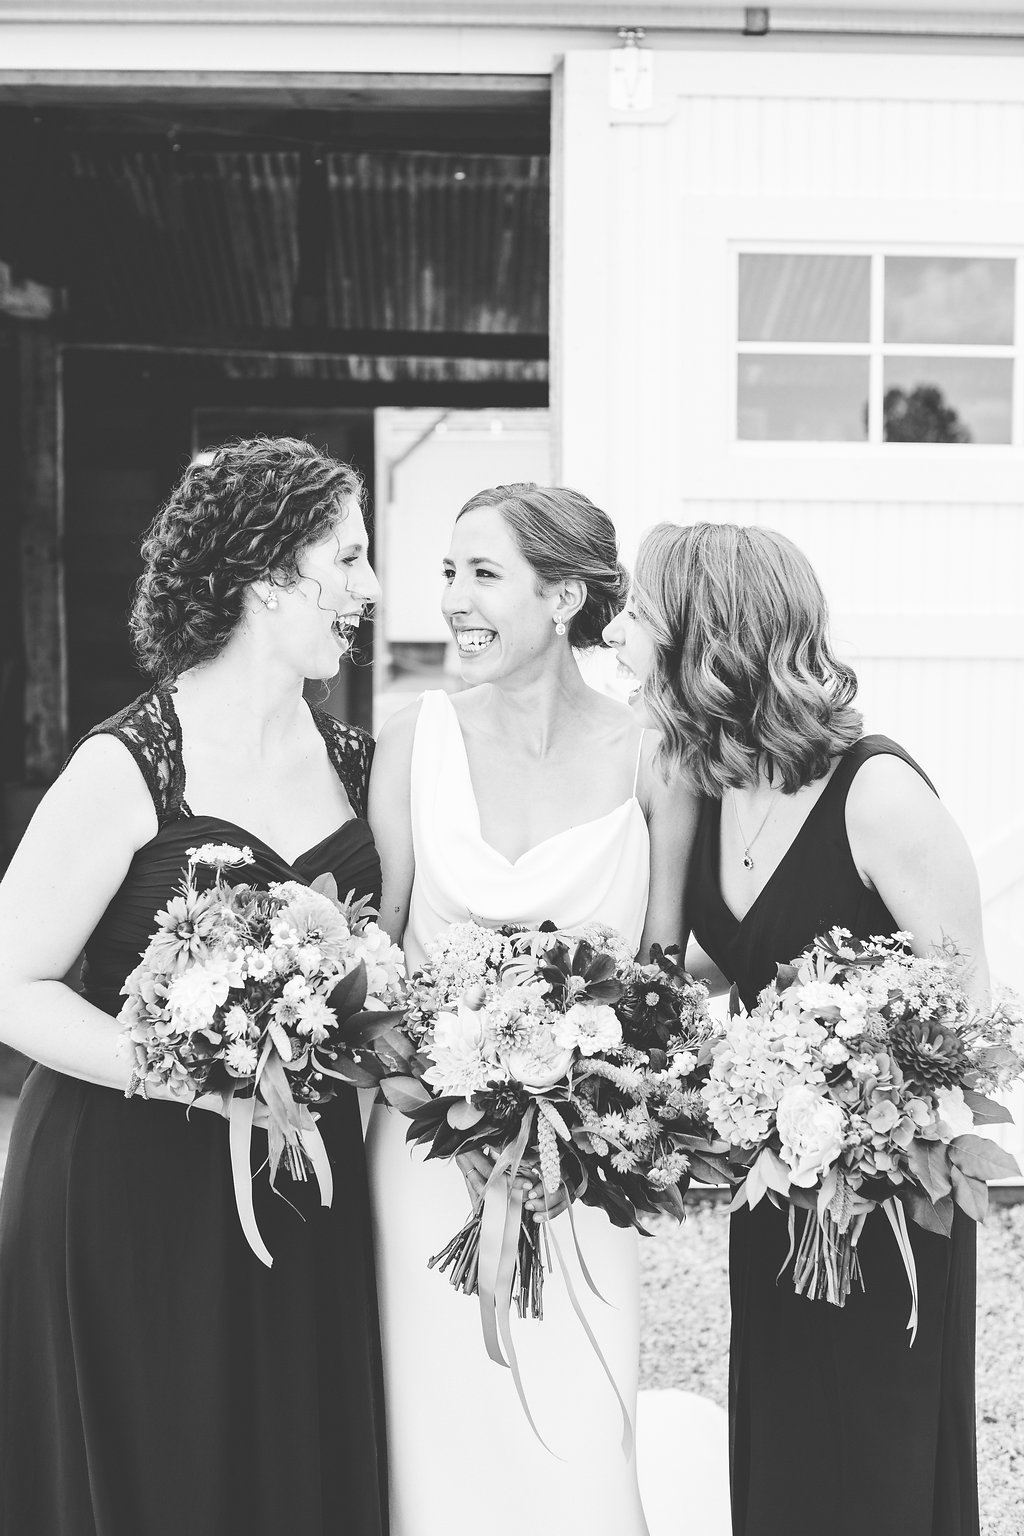 Monica-Relyea-Events-Kelsey-Combe-Photography-Dana-and-Mark-South-Farms-wedding-morris-connecticut-barn-tent-jewish-farm-country-litchfield-county341